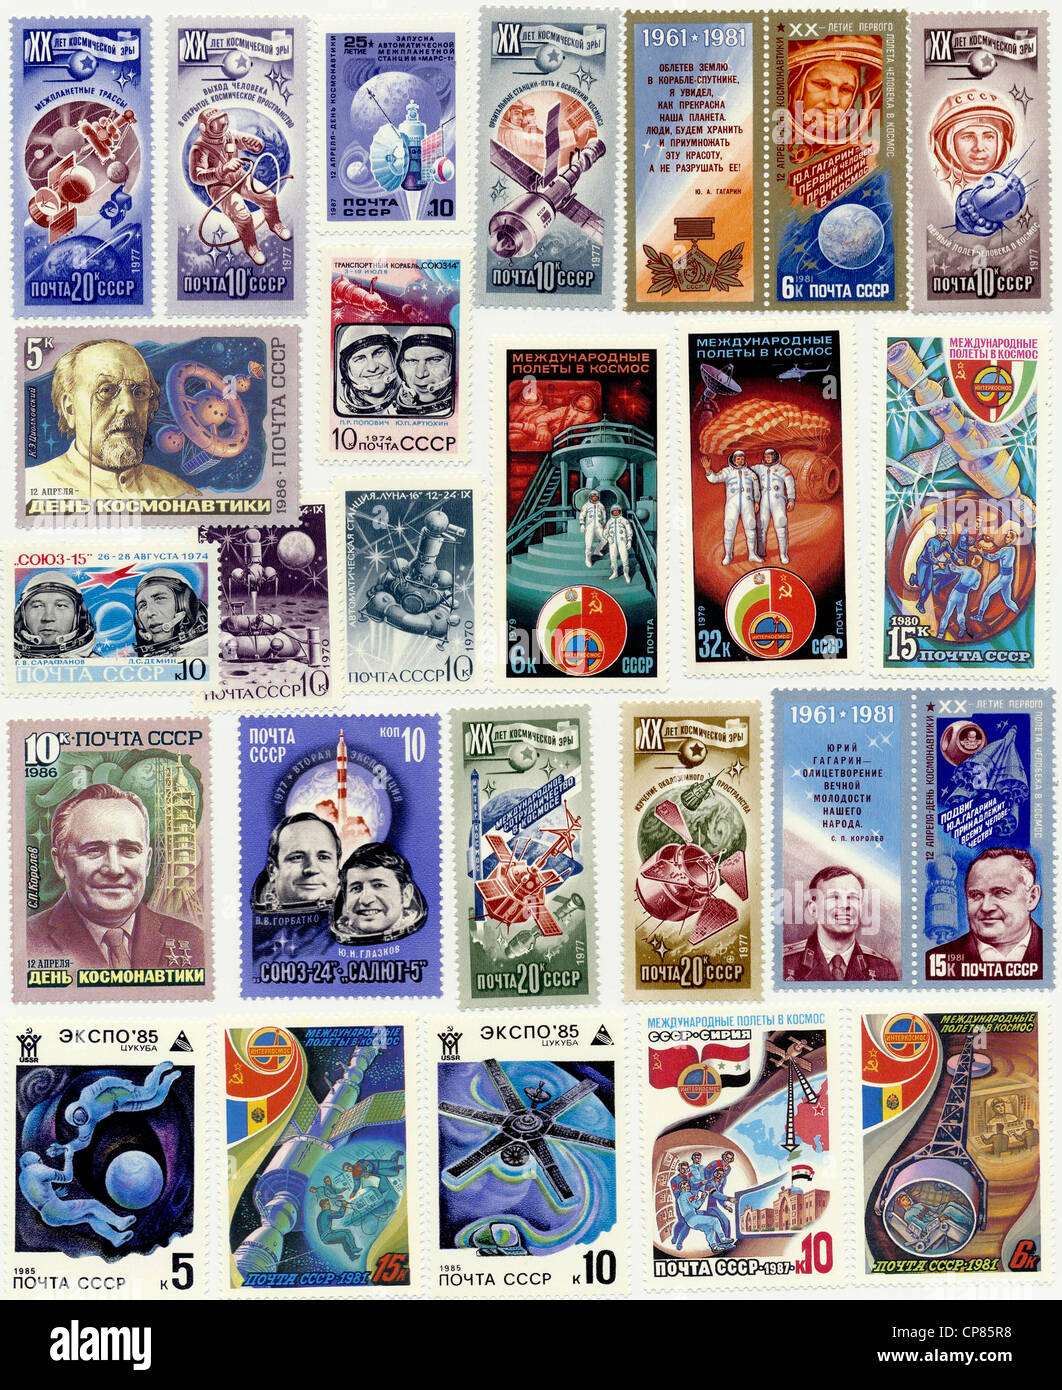 Historic postage stamps of the USSR, Aerospace, historische Briefmarken der UdSSR, Motiv Raumfahrt - Stock Image